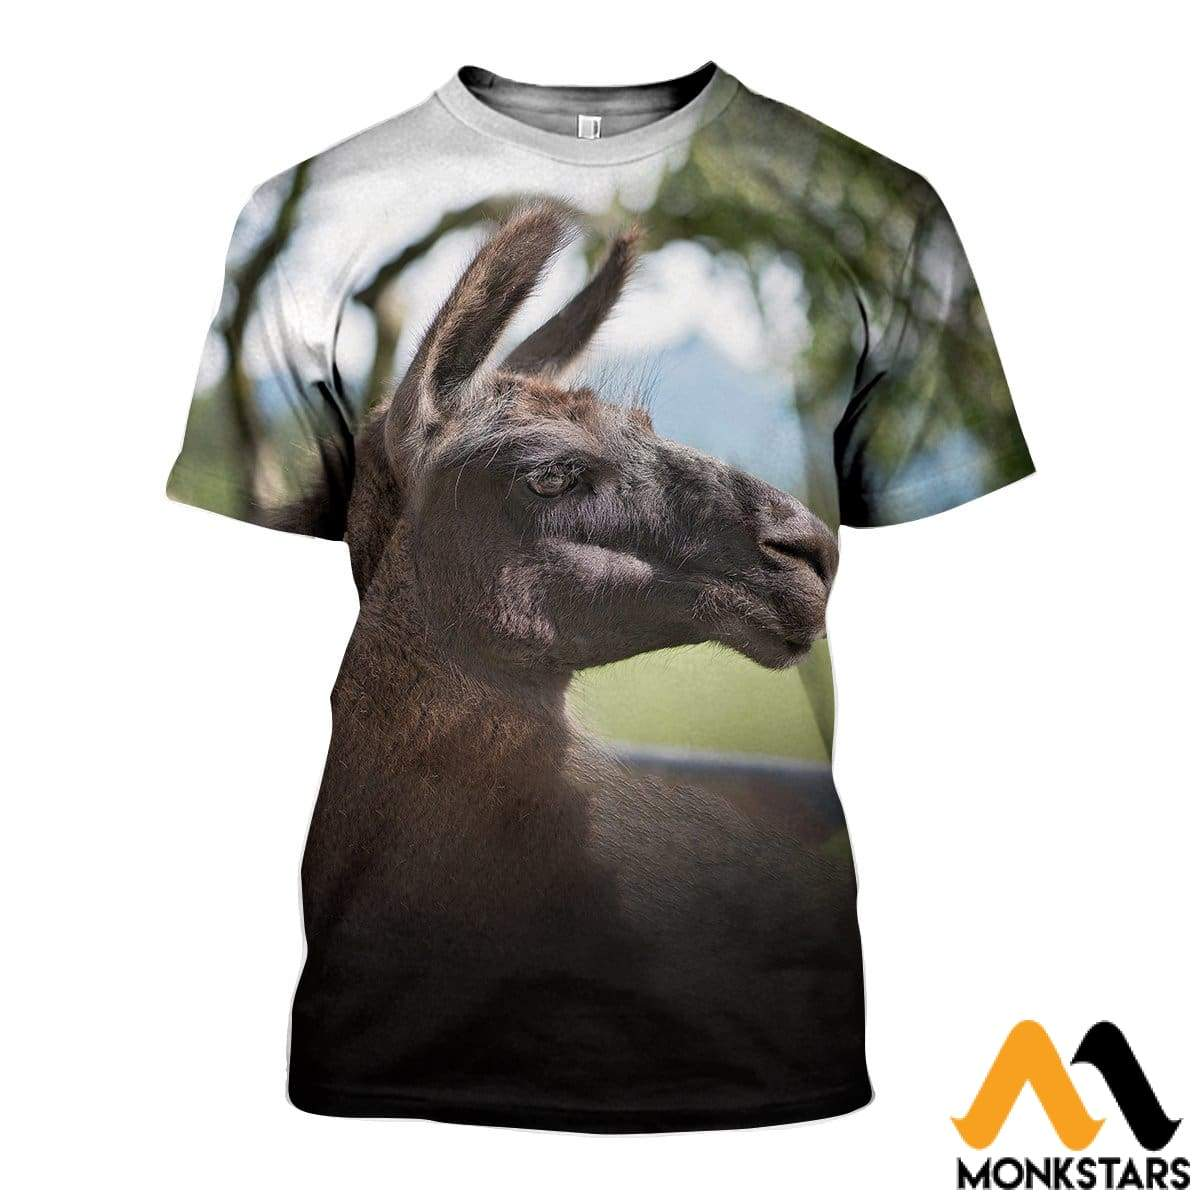 0f814c47fdd4 3D All Over Printed Camel Shirts And Shorts T-Shirt   Xs Clothes